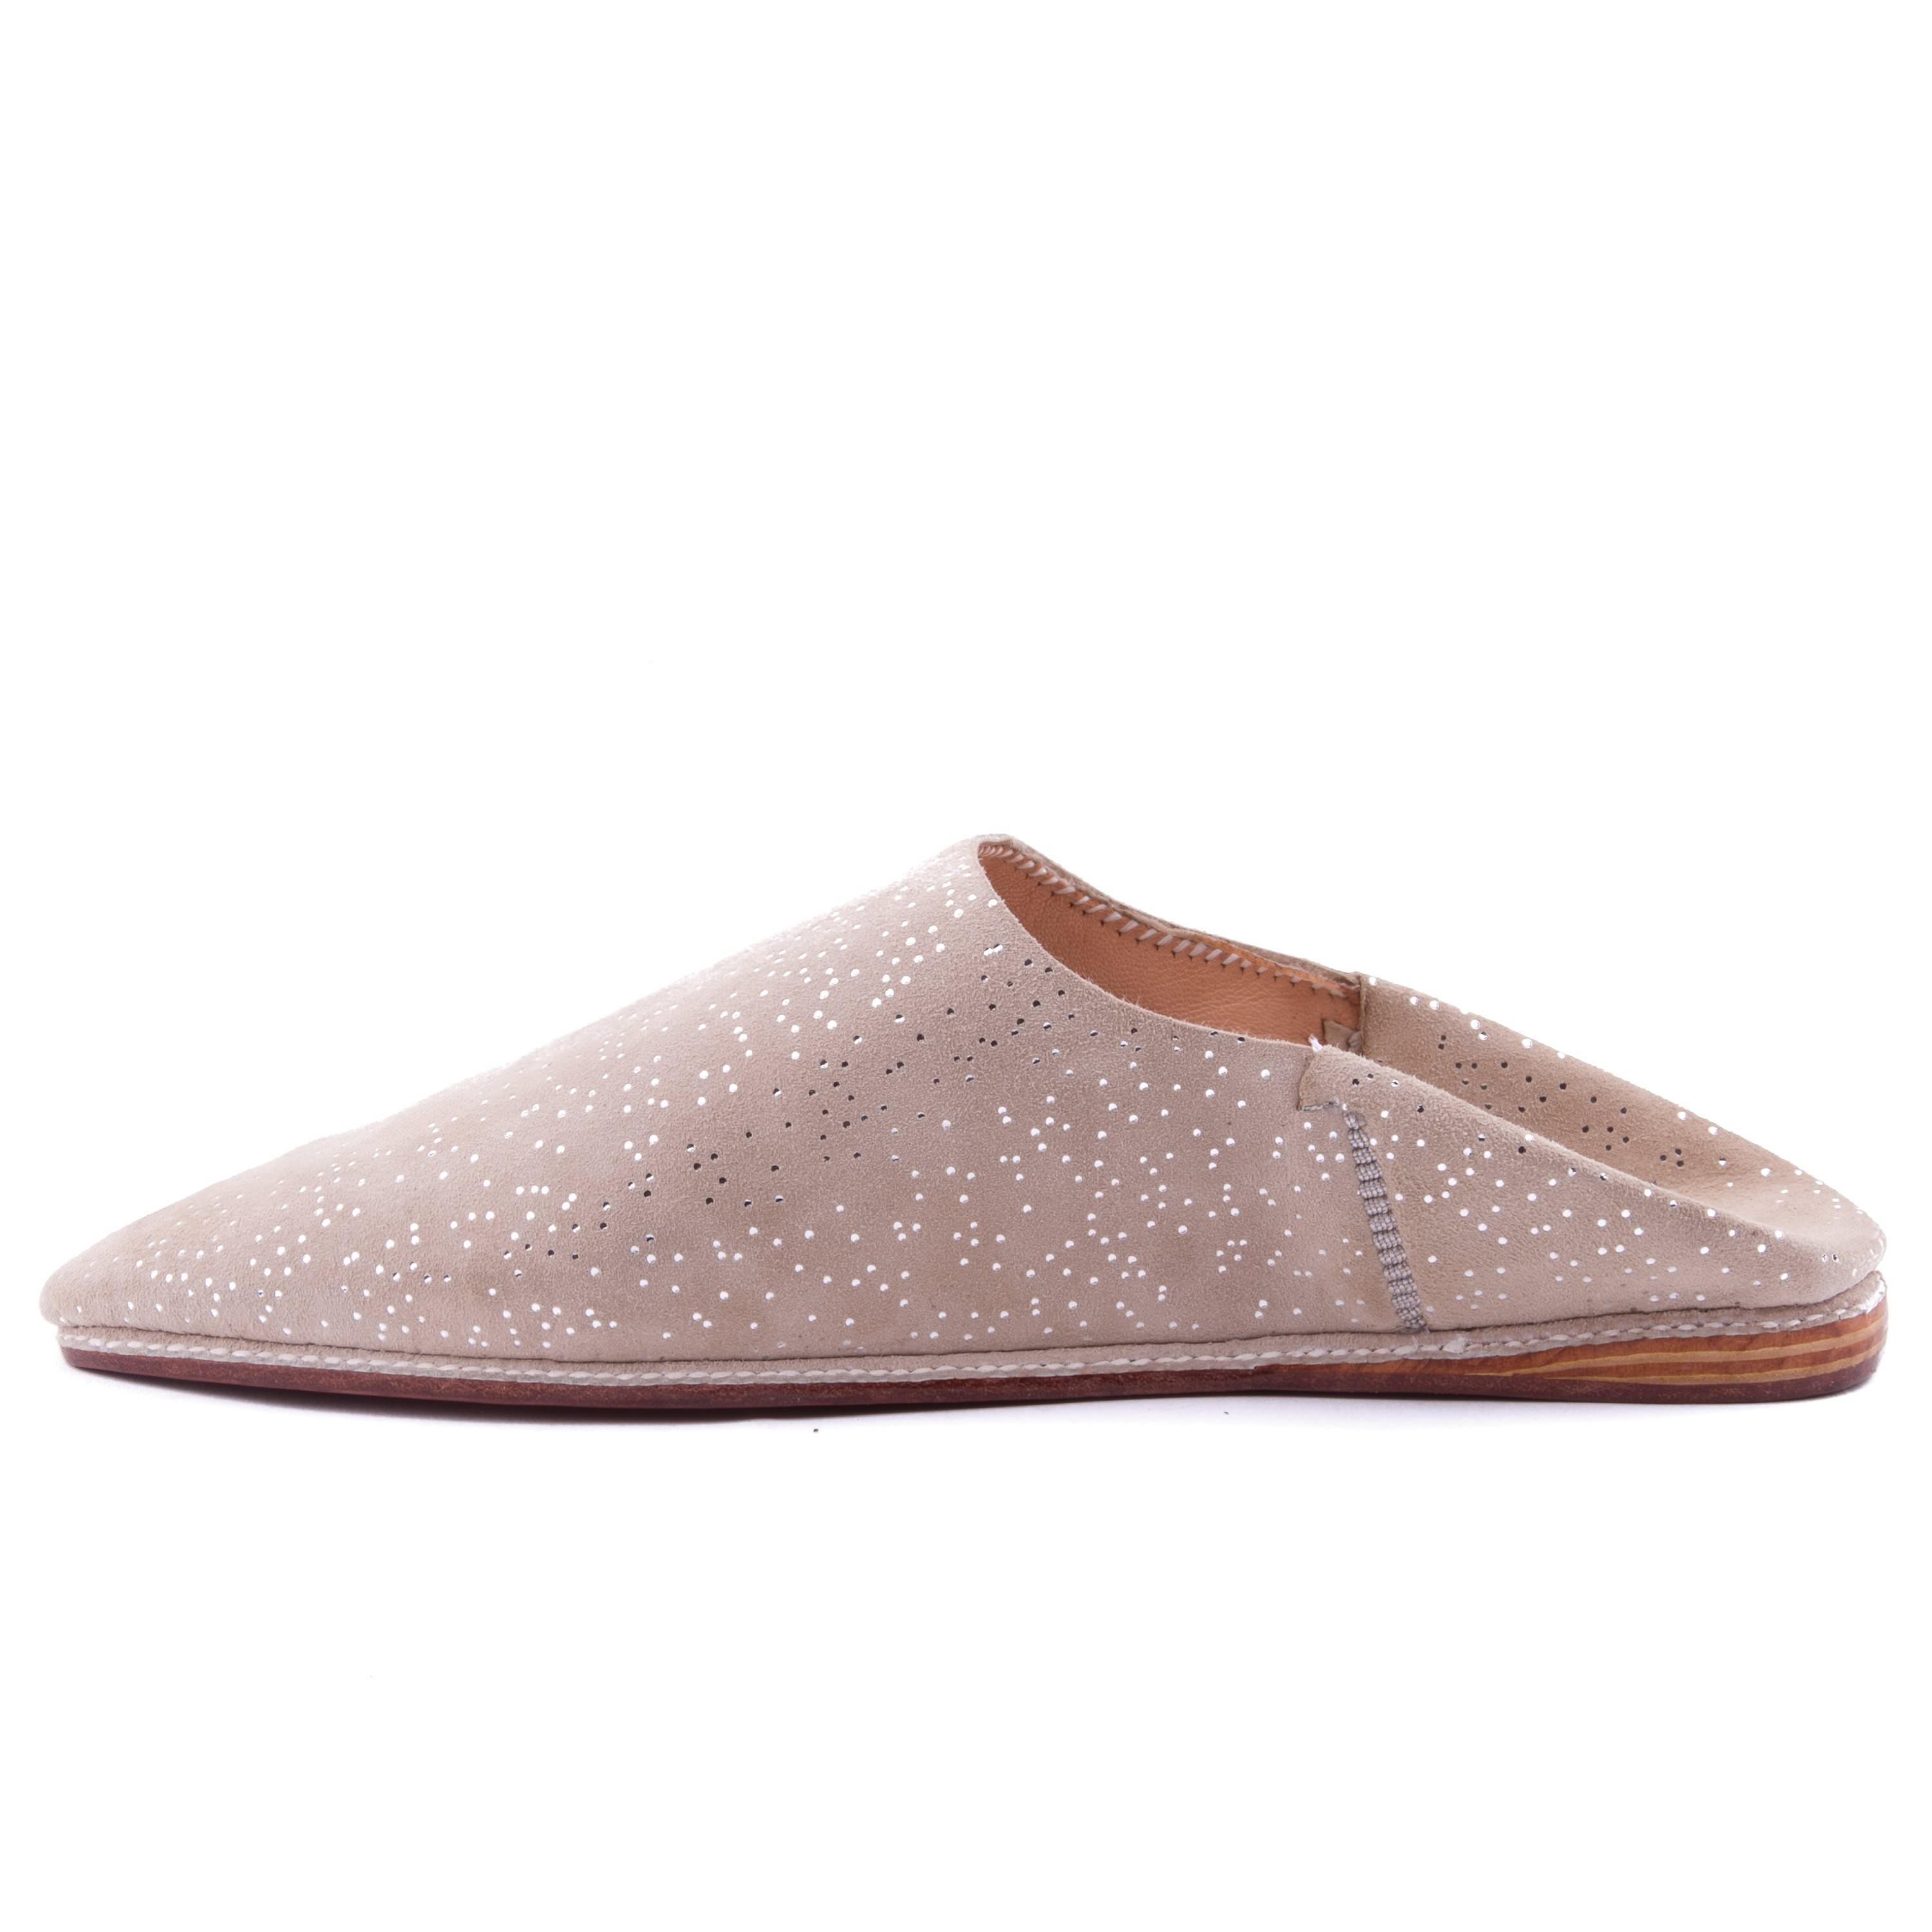 Starry beige leather slippers